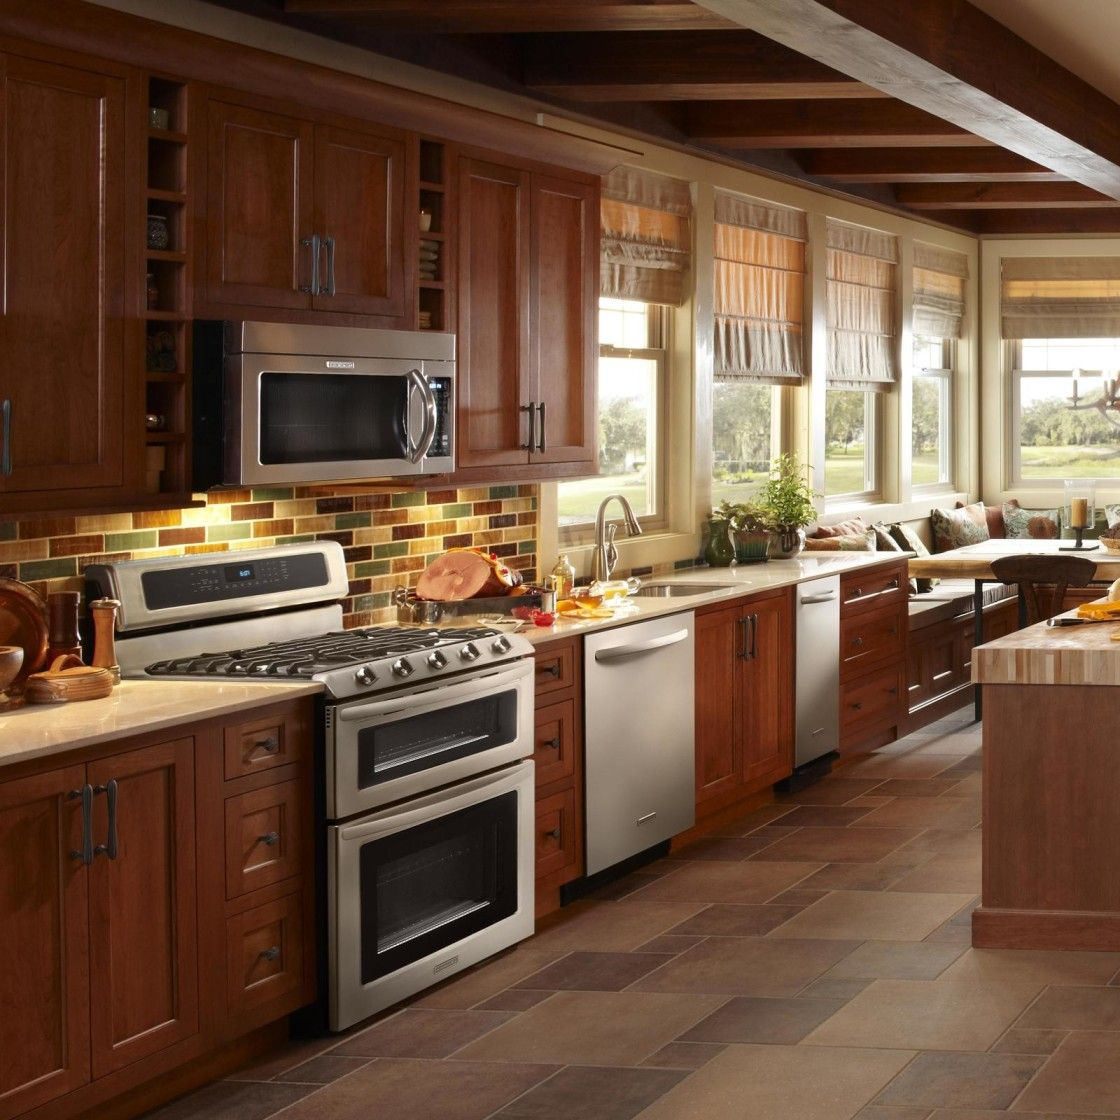 Kitchen Small Remodeling Ideas Budget Craft Room Bath Design And Interesting Kitchen Designs On A Budget 2018